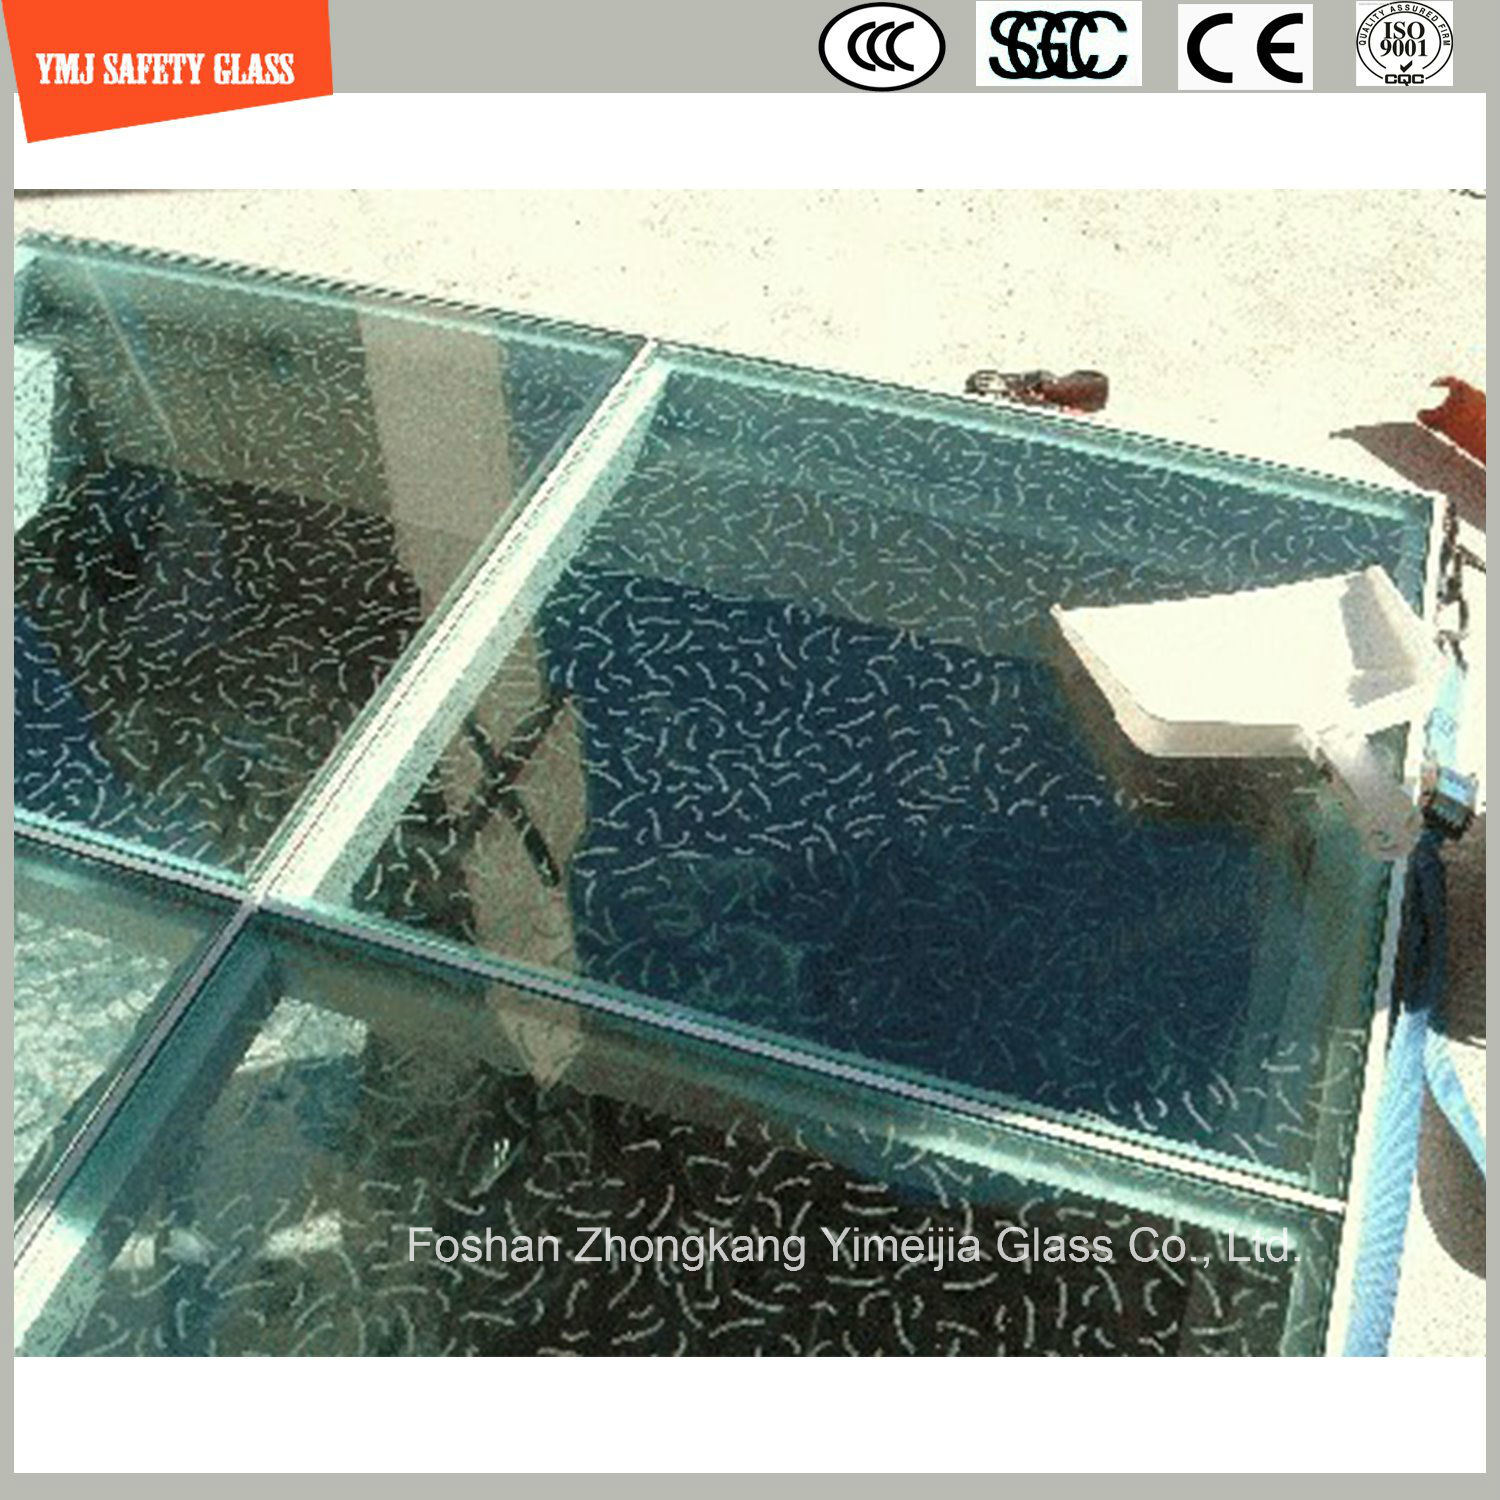 Screen Printing Tempered Anti Slipping Glass for Floor